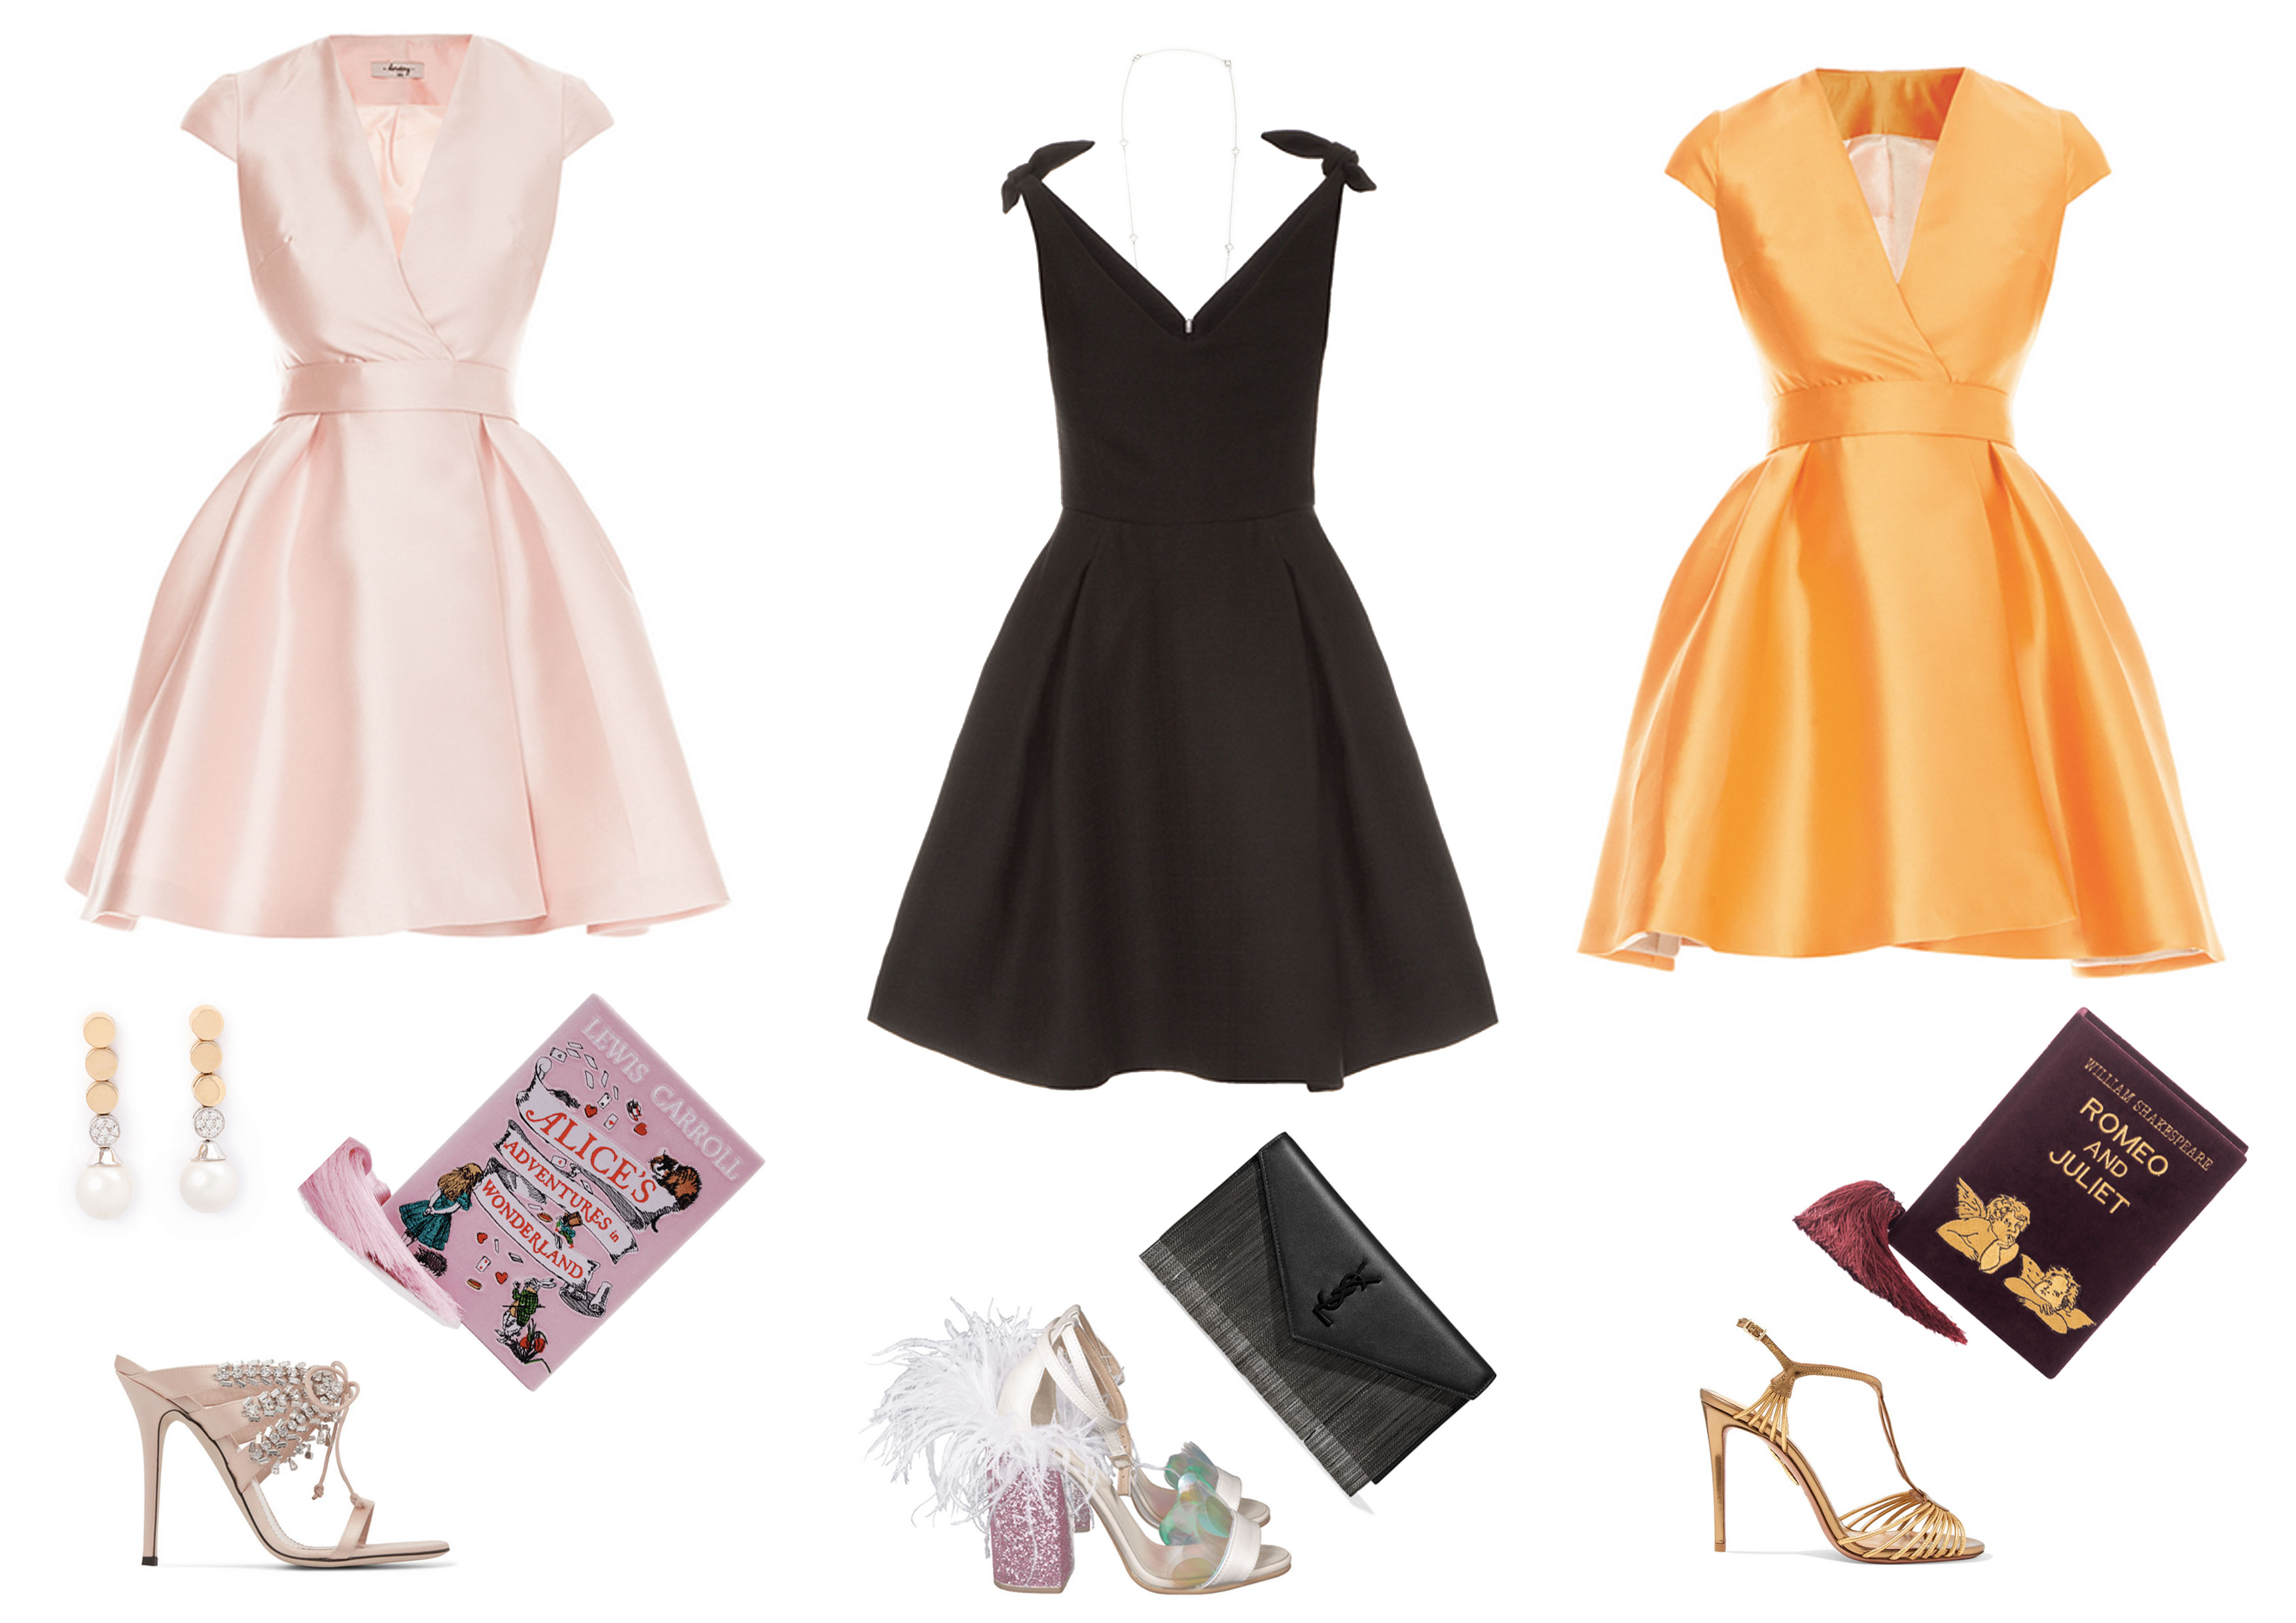 Outfits for prom